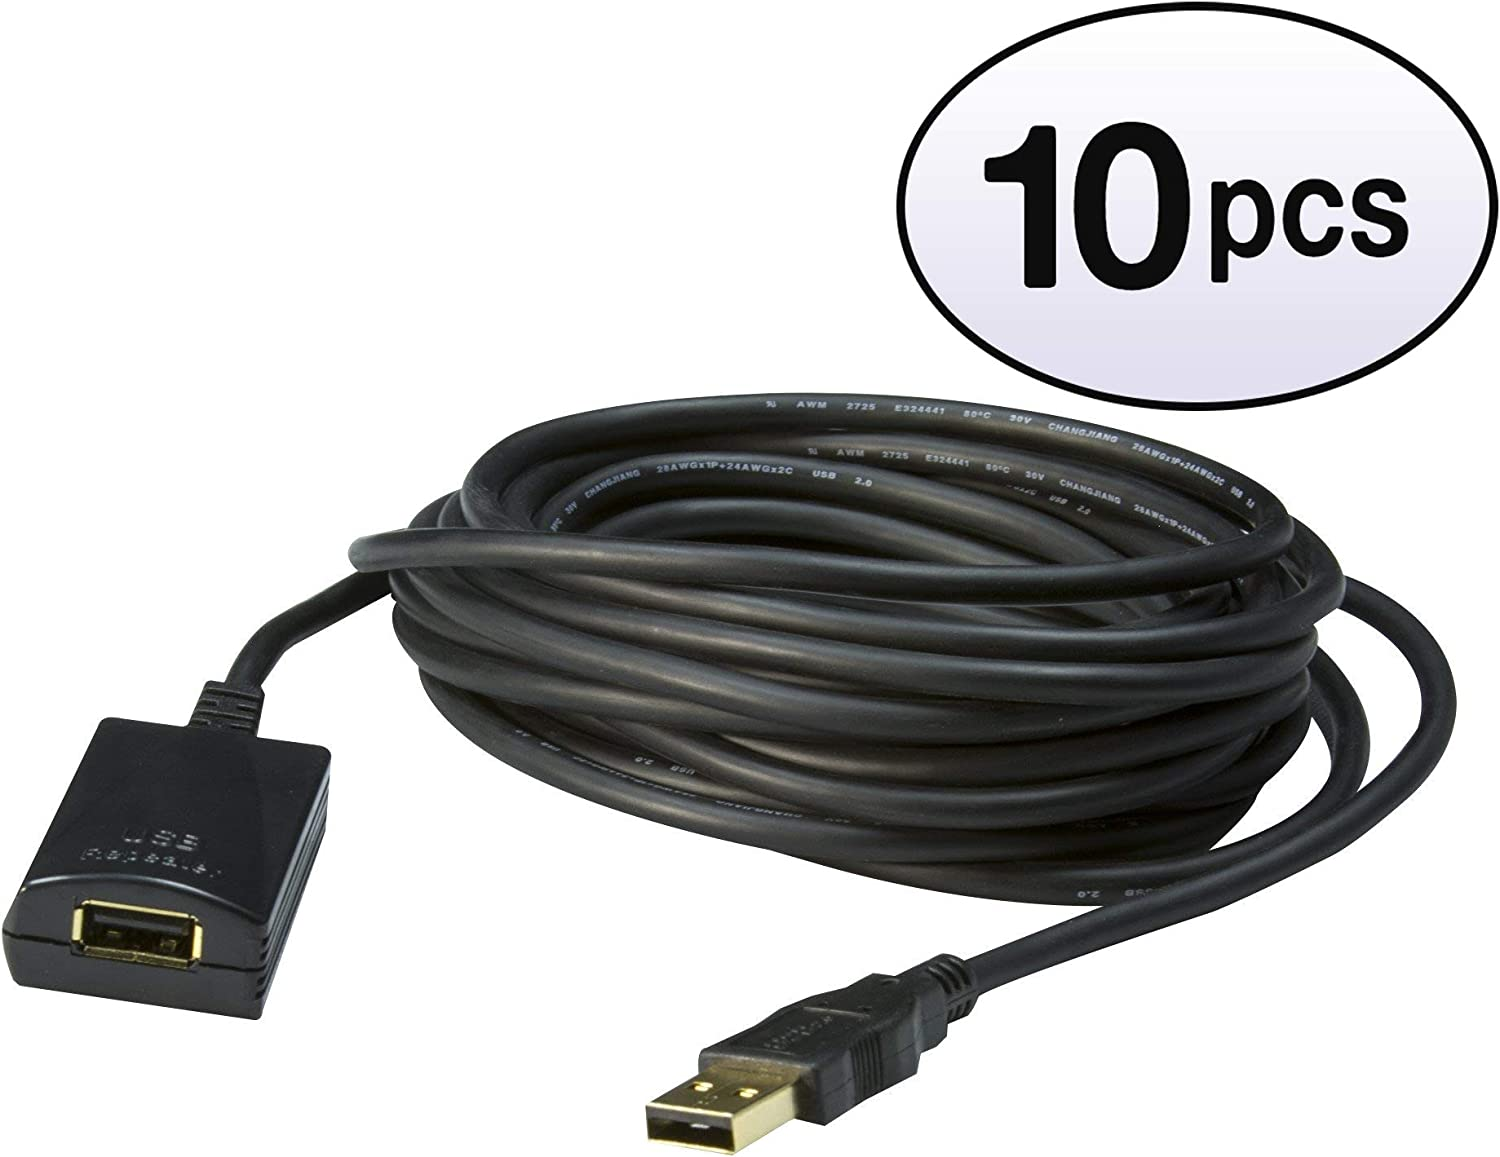 3 feet Type A Male to Type A Female Black USB 2.0 Extension Cable GOWOS 4 Pack